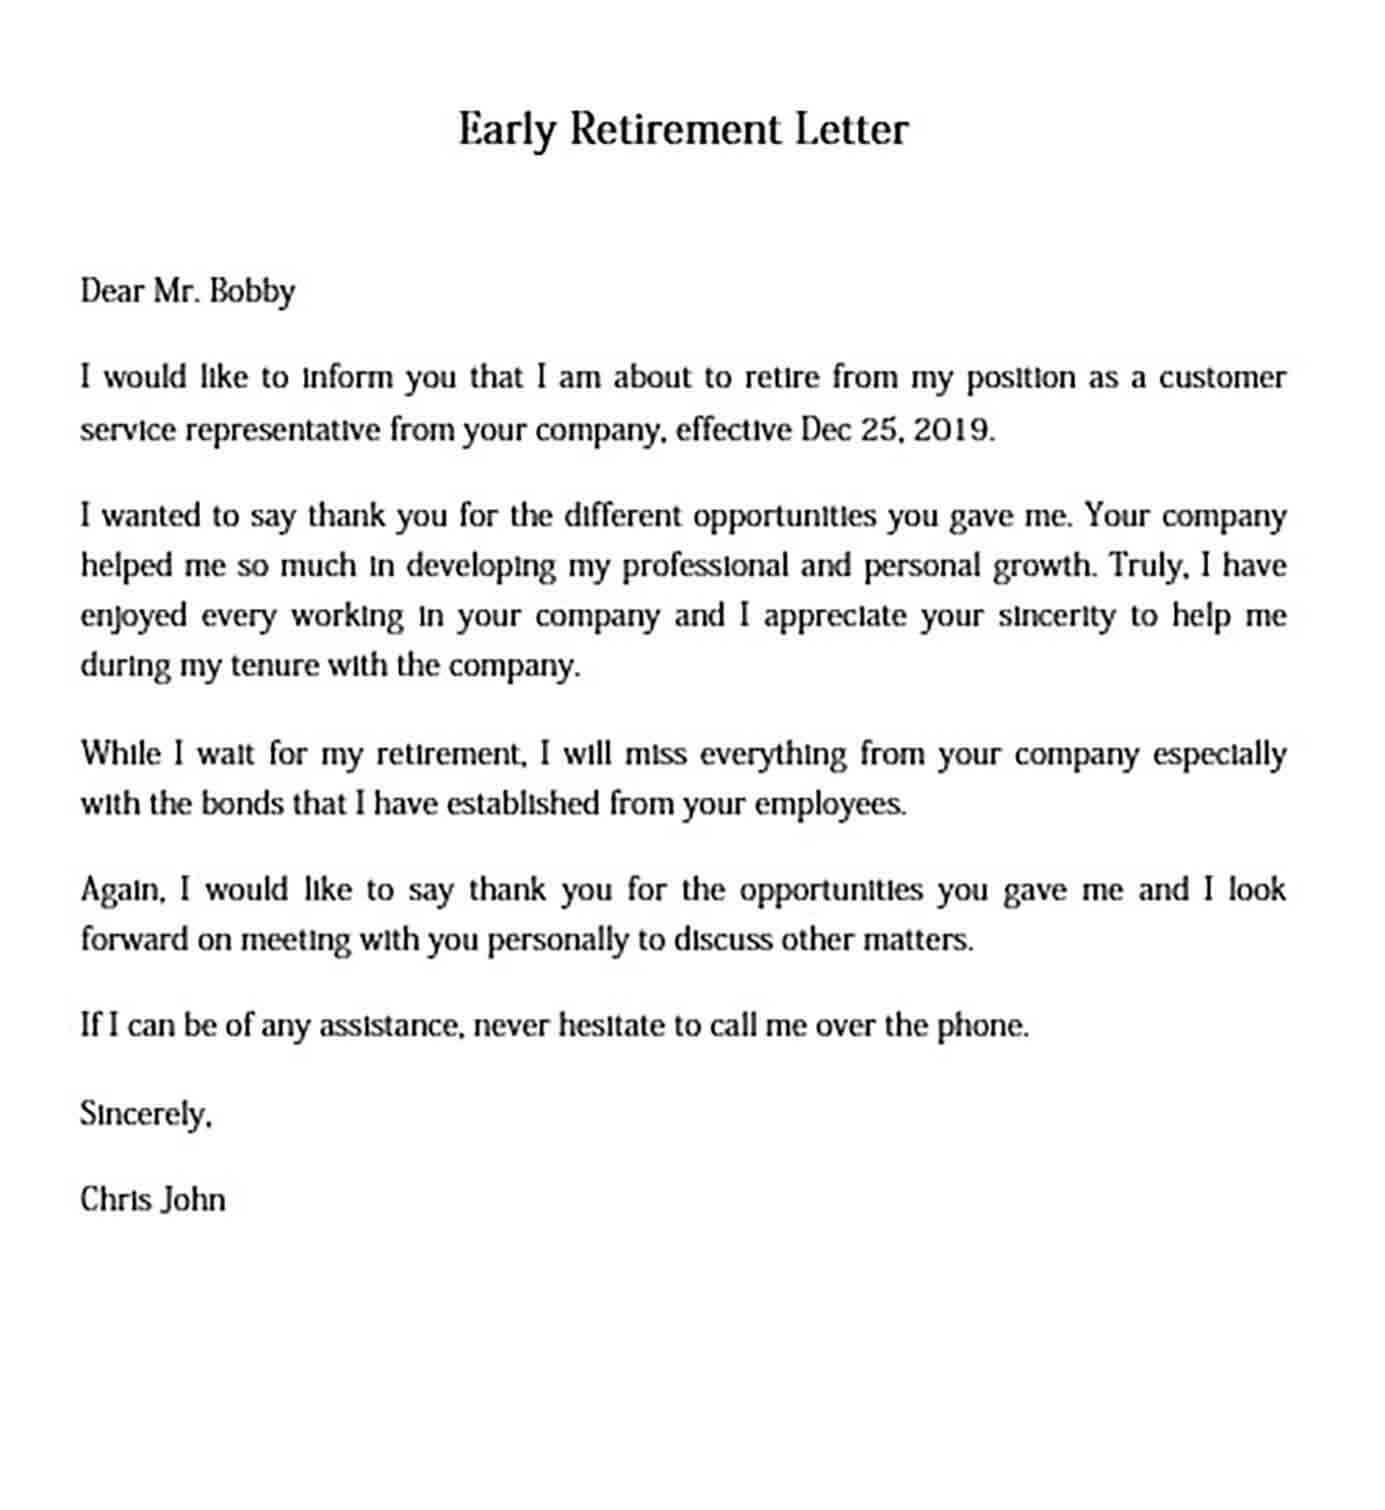 Early Retirement Letter